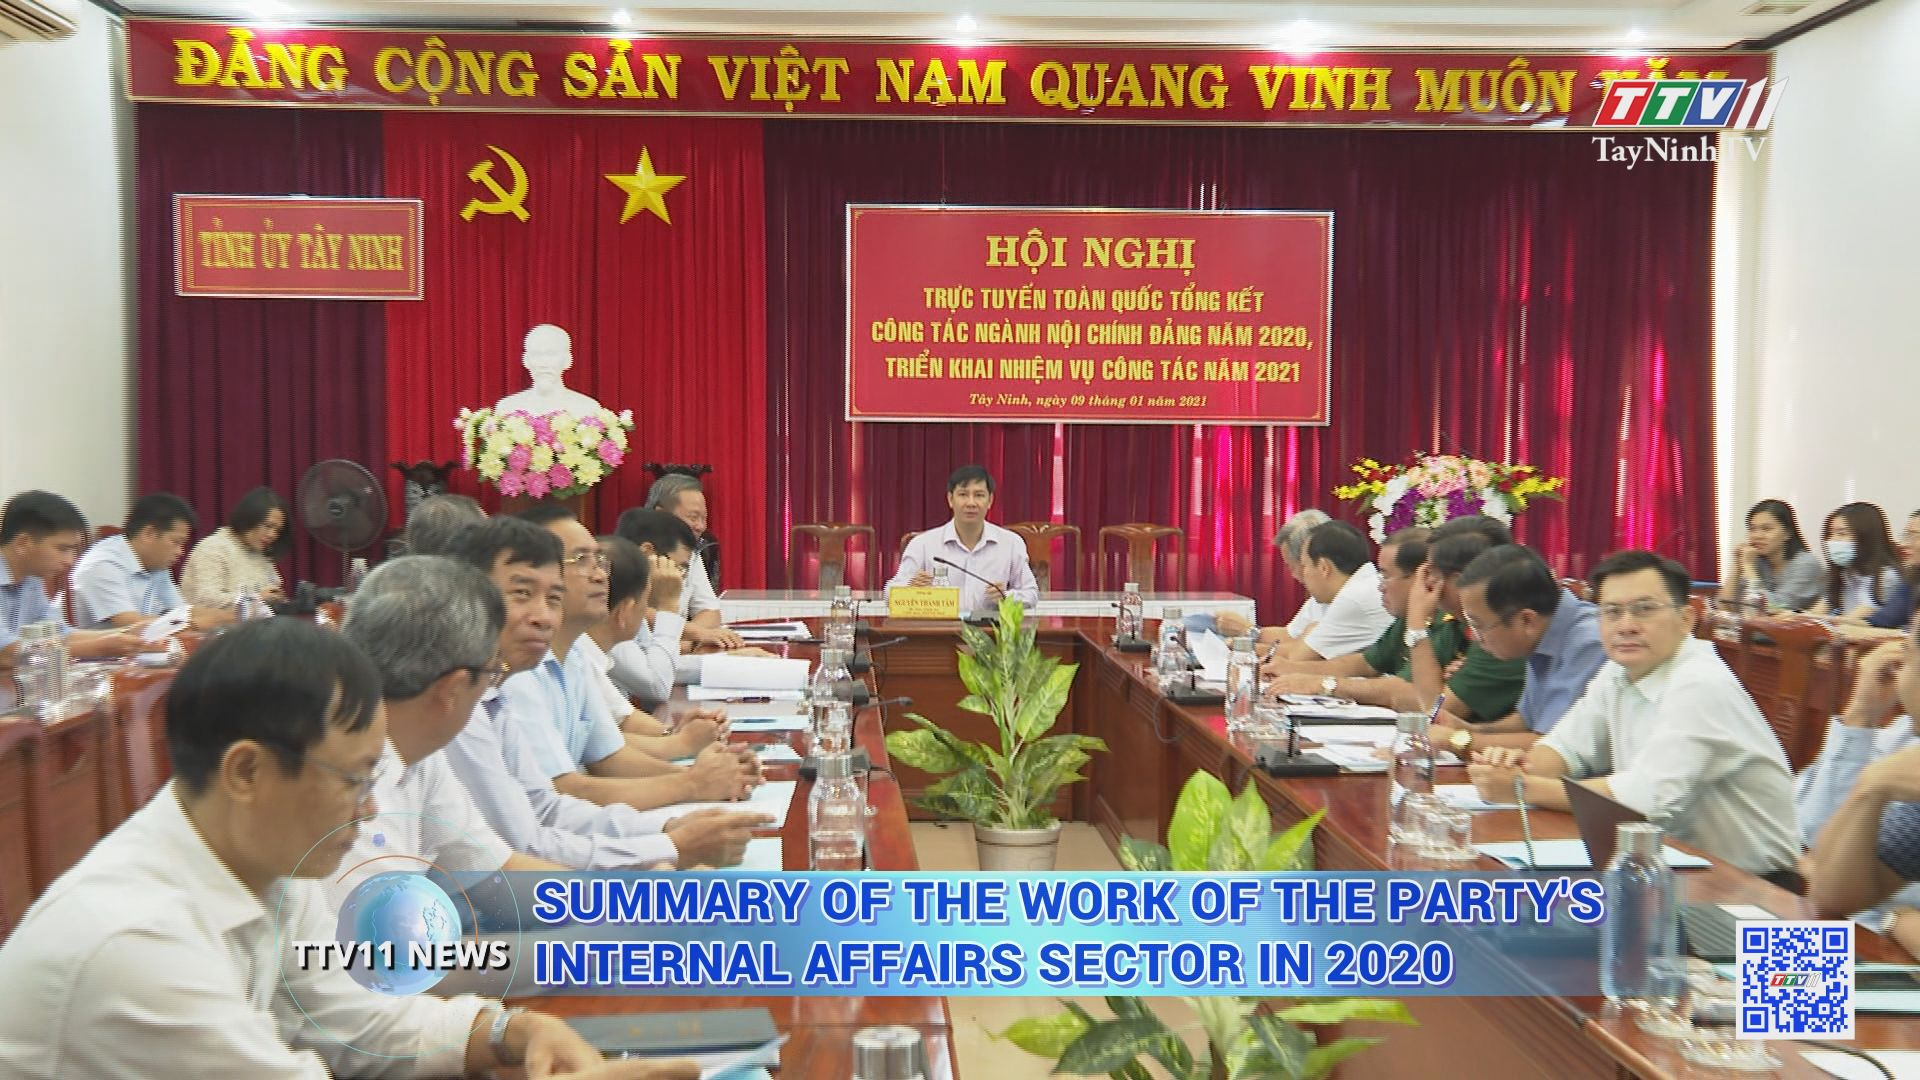 Summary of the work of the party's internal affairs sector in 2020 | TTVNEWS | TayNinhTV Today